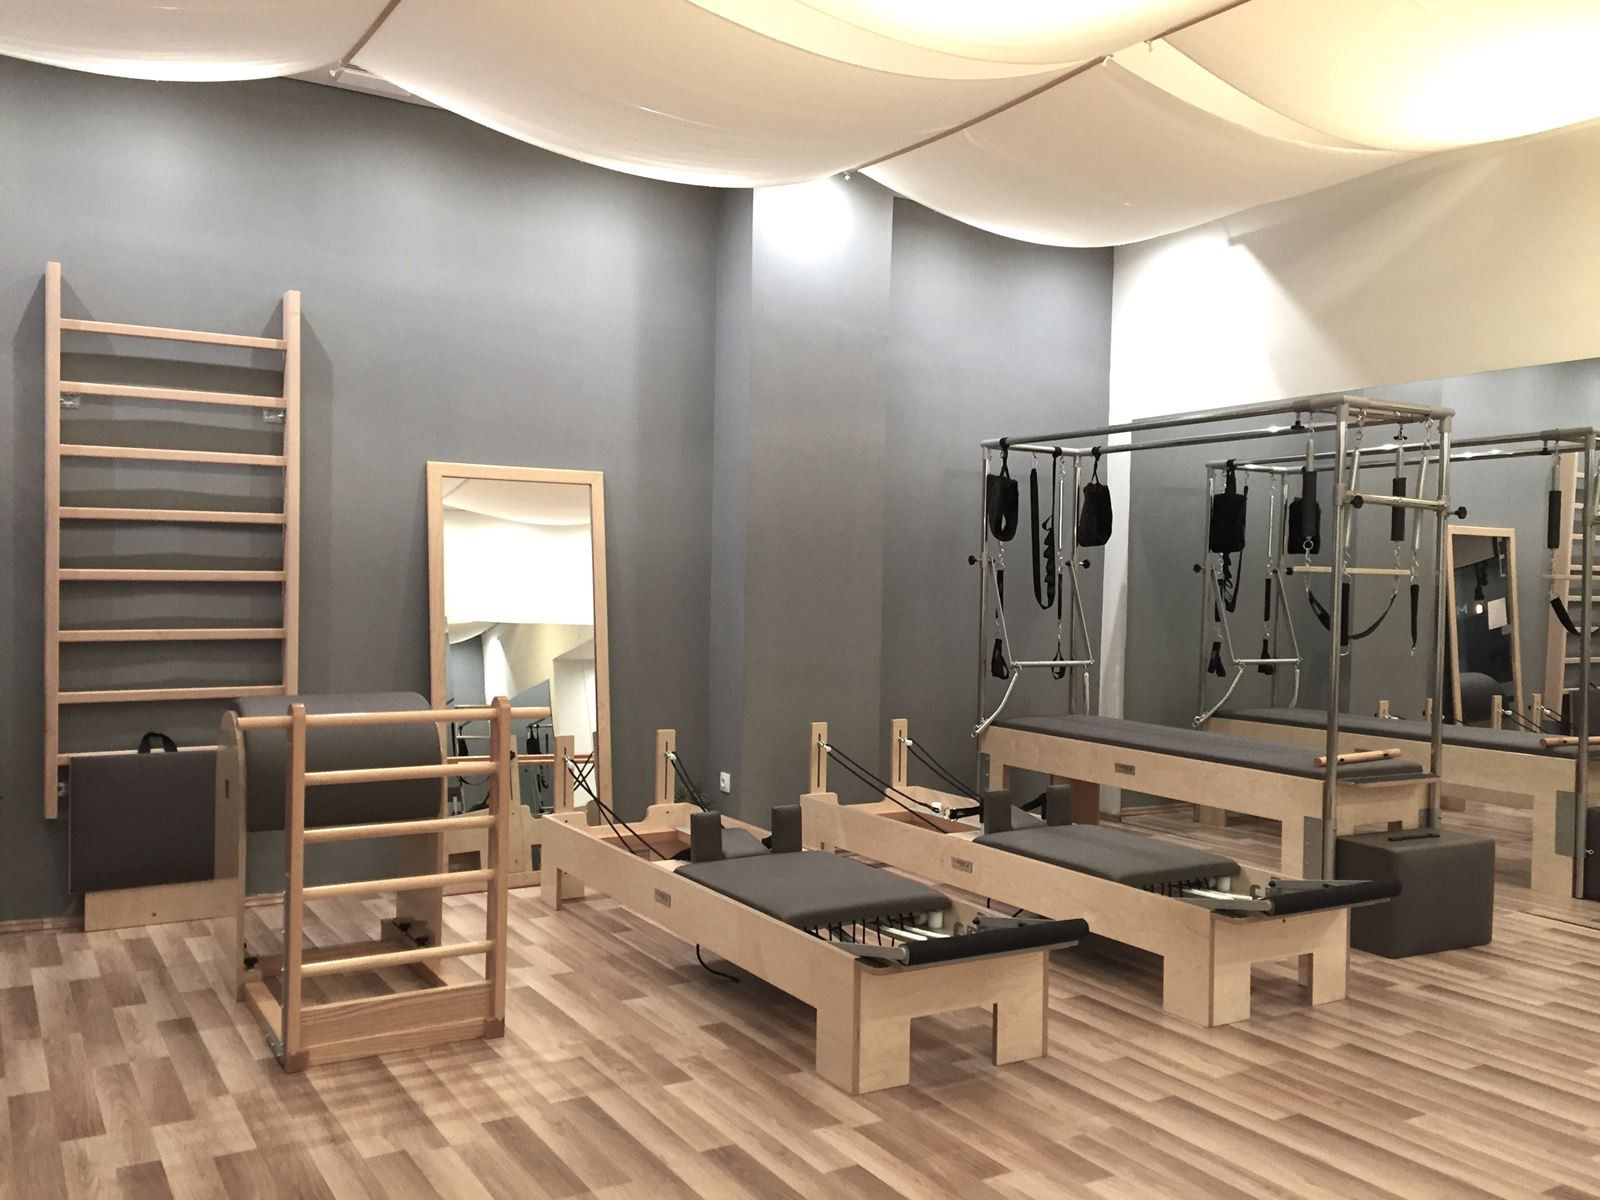 Pilates Studio in Glyfada